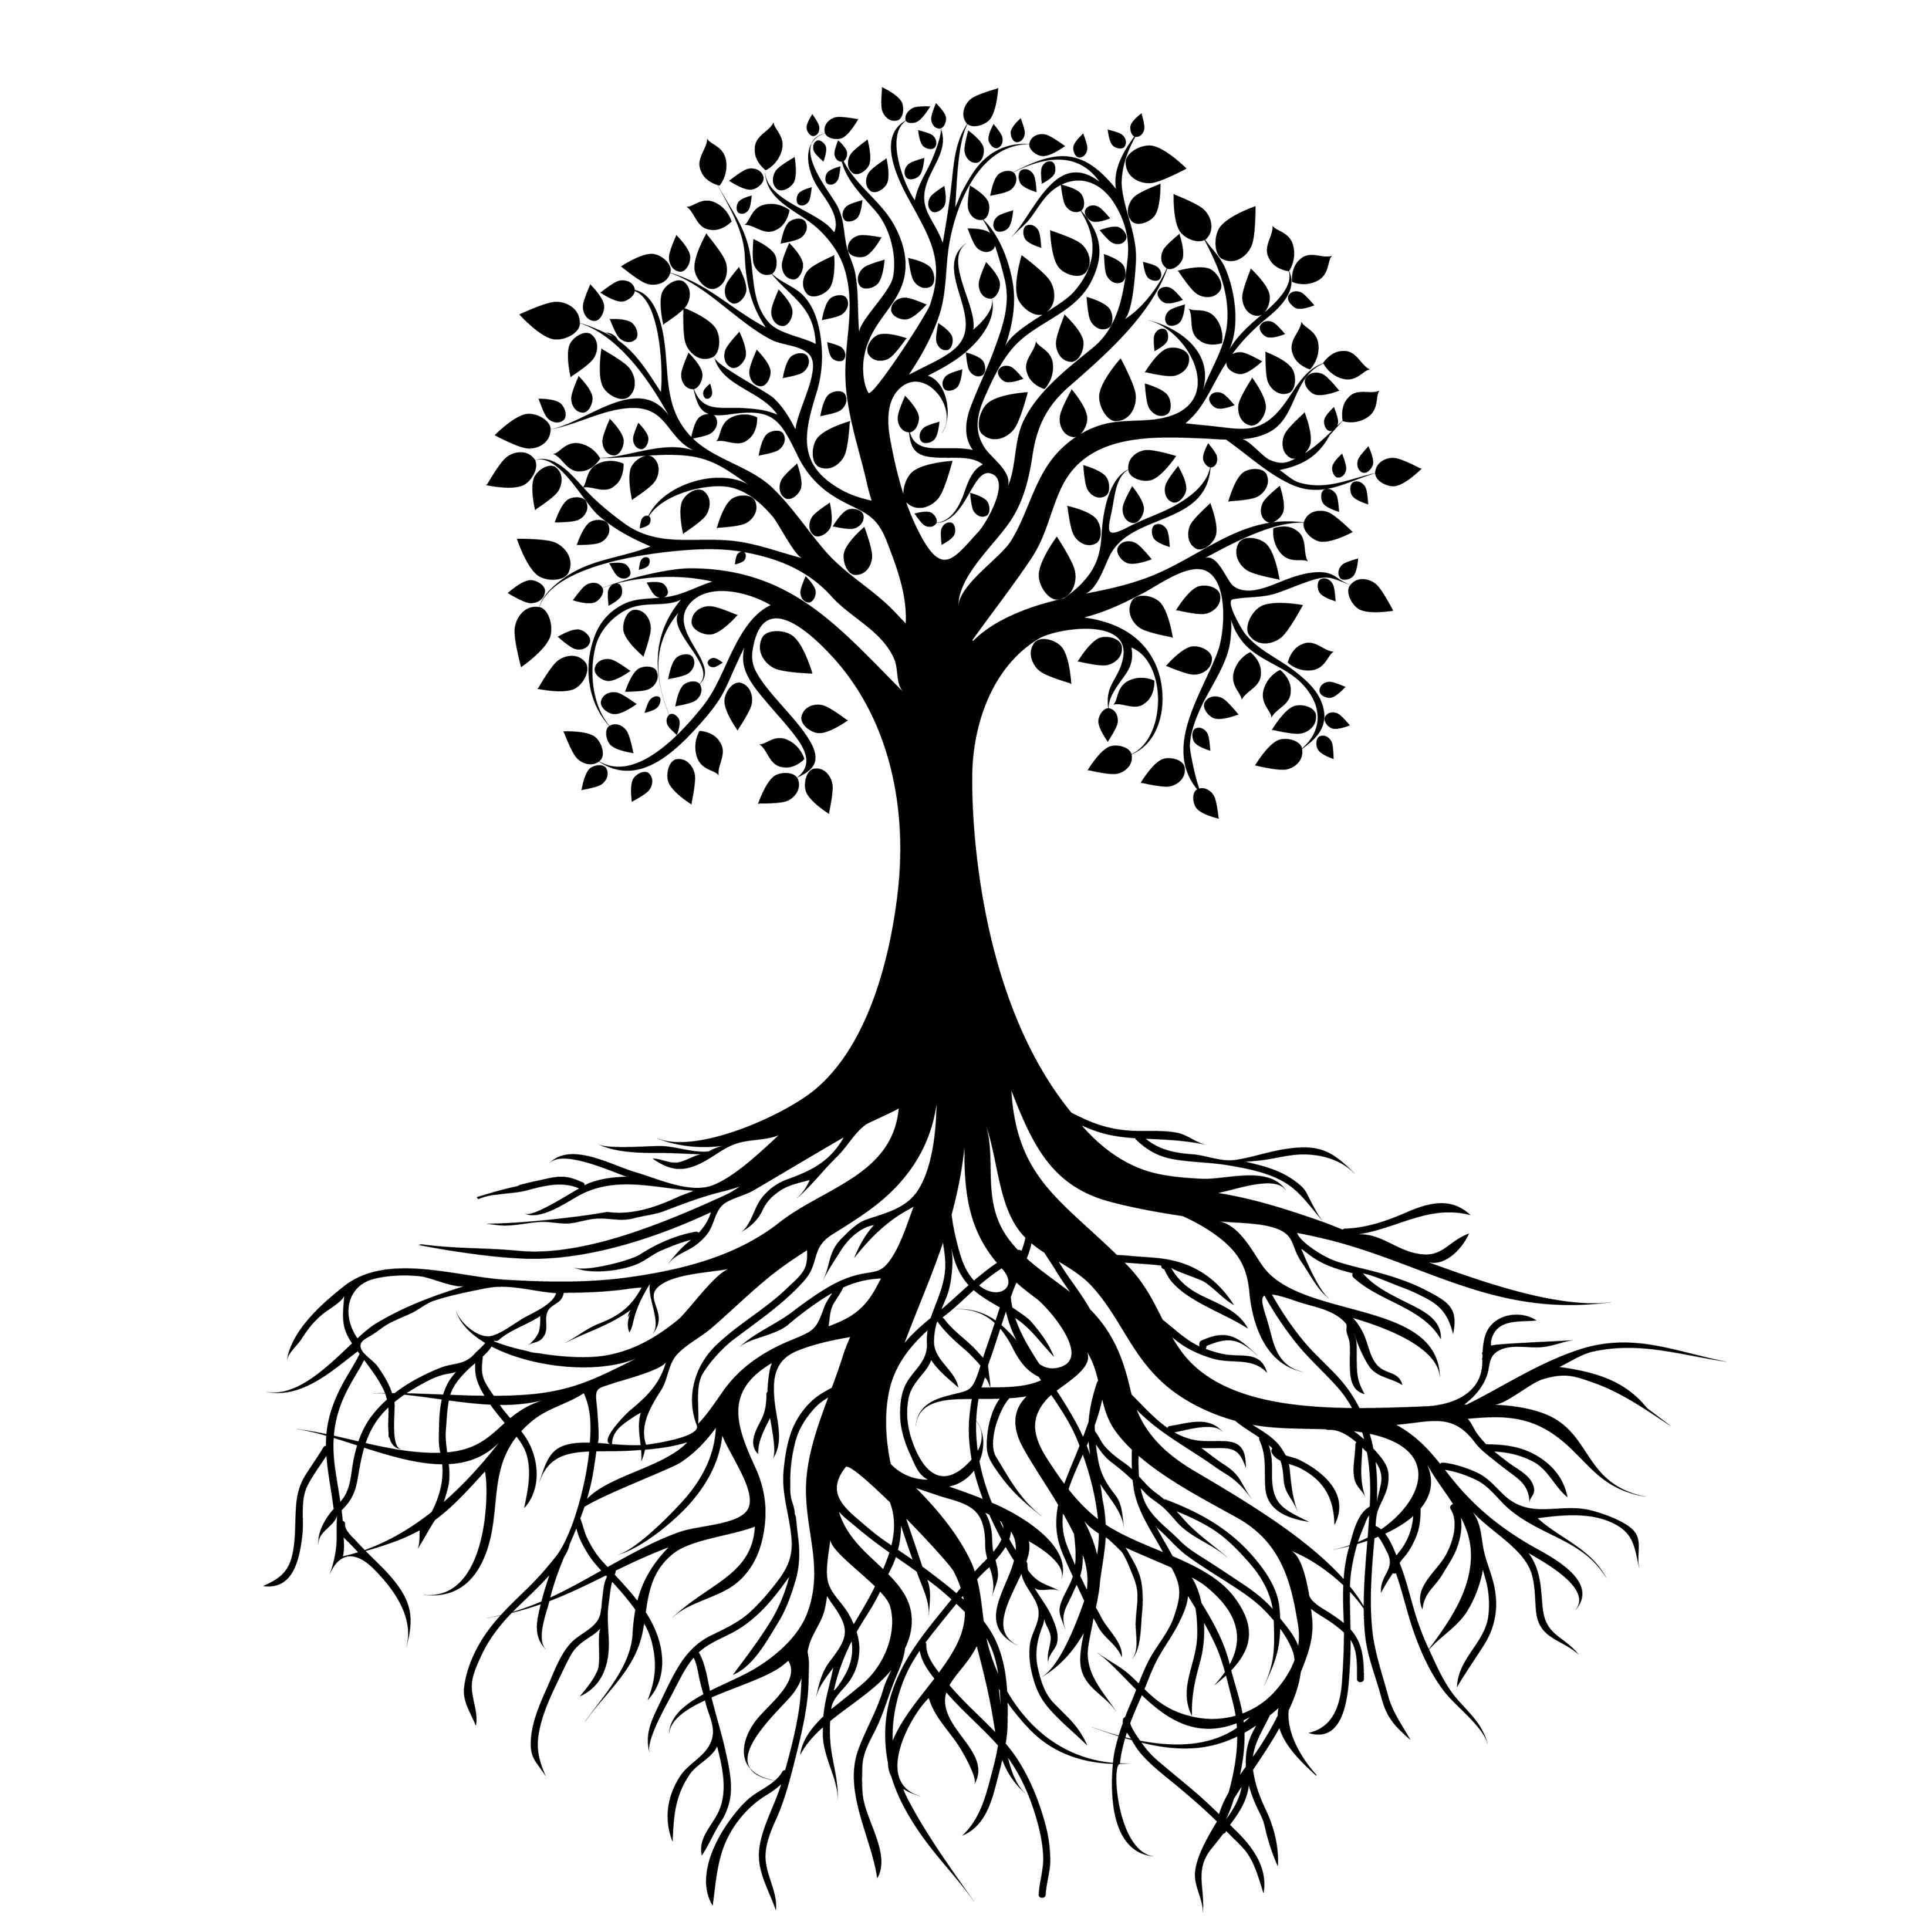 Tree And Roots Silhouette at GetDrawings.com.